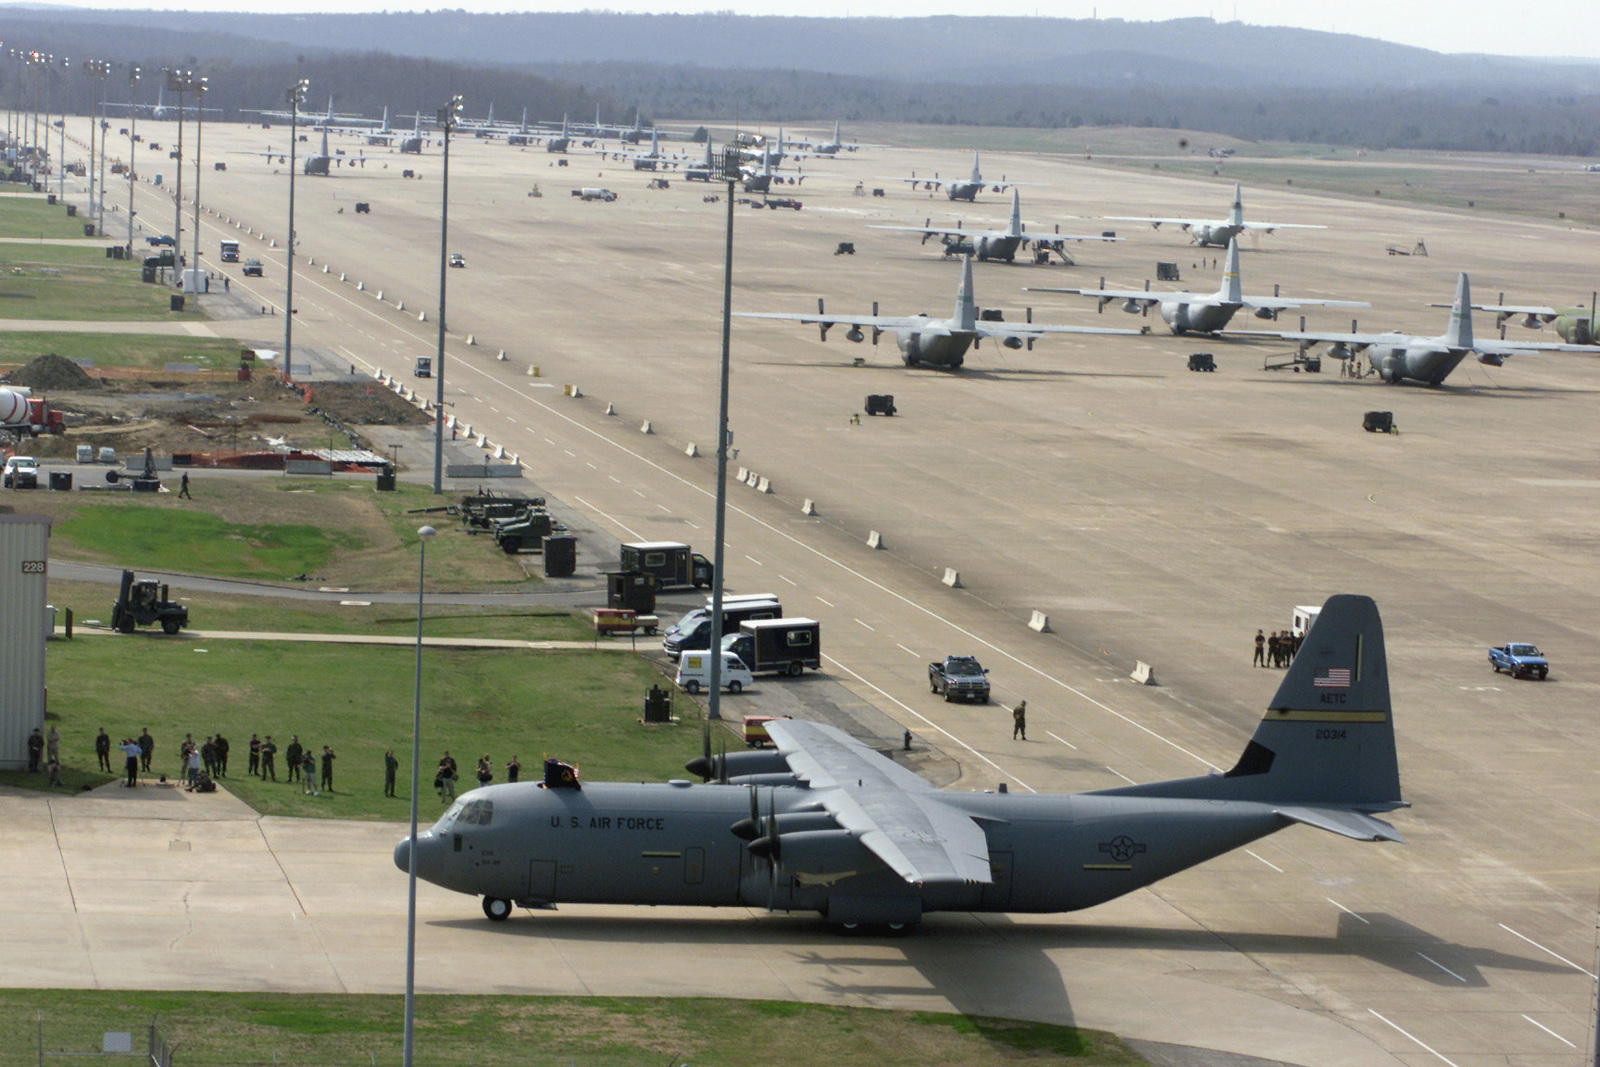 A group of onlookers are on hand to witness as a US Air Force (USAF) C-130J Hercules, Tactical Transport Aircraft taxies into position at its new home at Little Rock Air Force Base (AFB), Arkansas (AR)